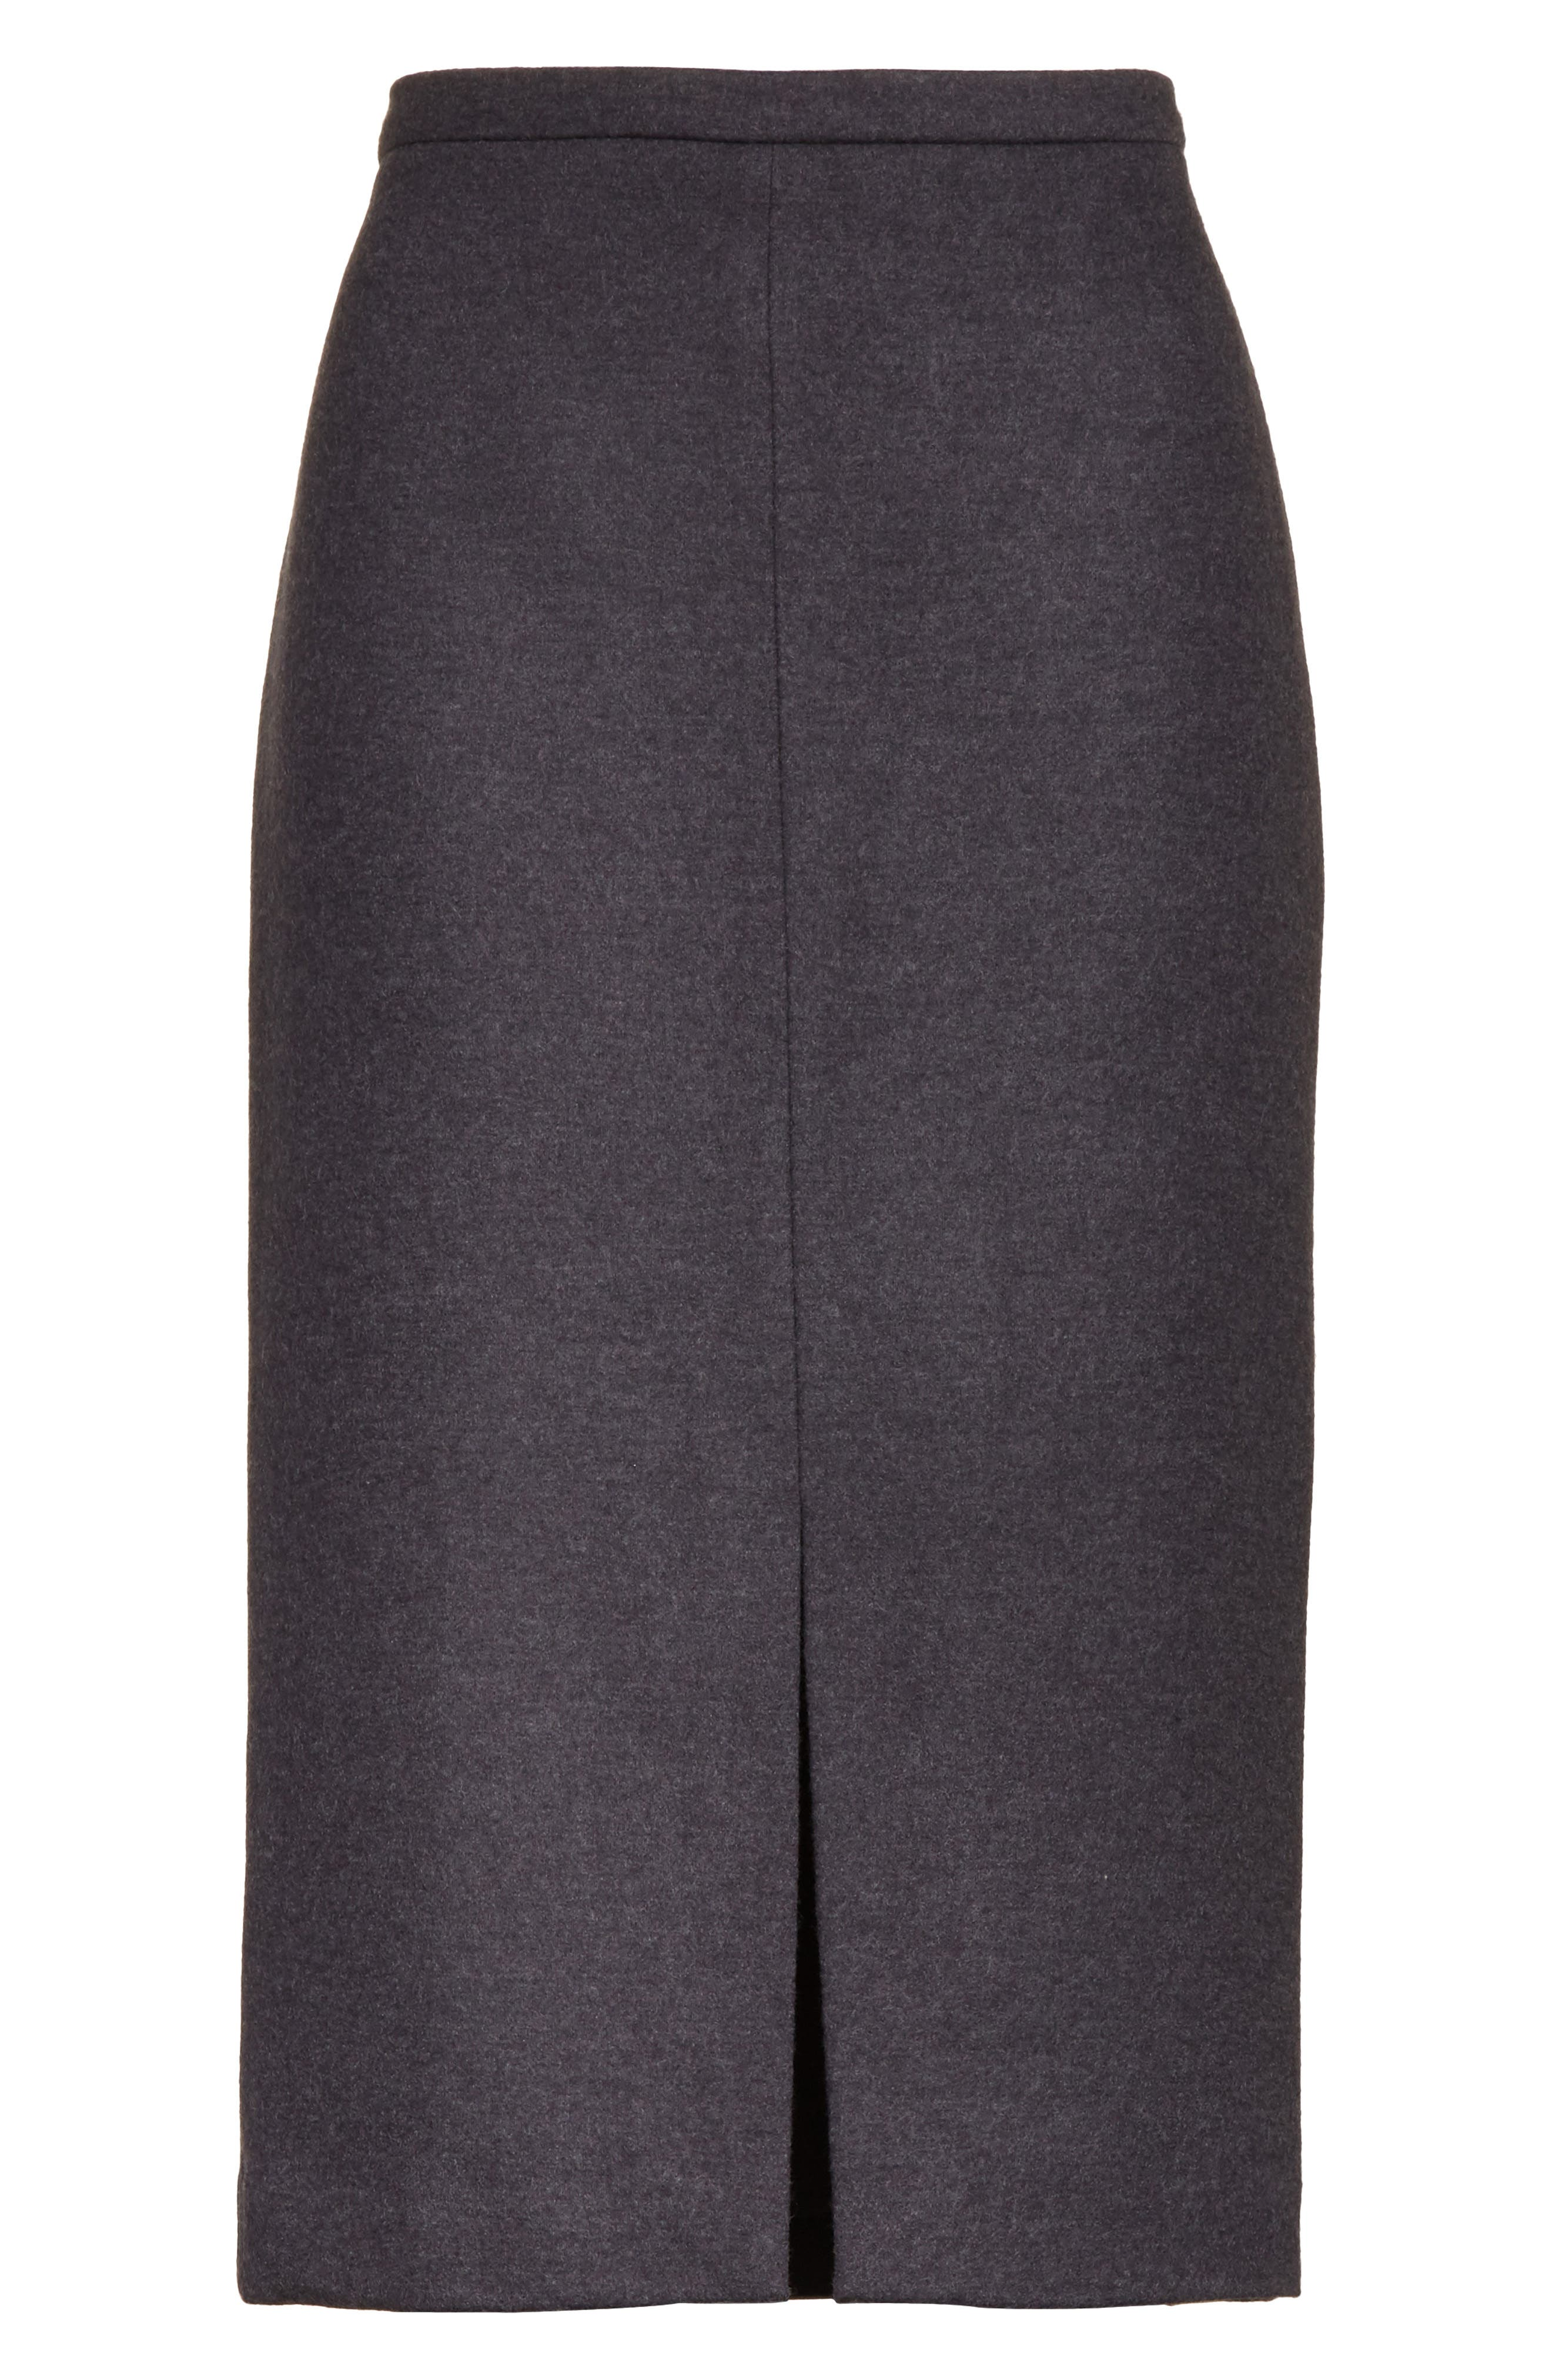 Nanna Leather Trim Wool Pencil Skirt,                             Alternate thumbnail 6, color,                             024